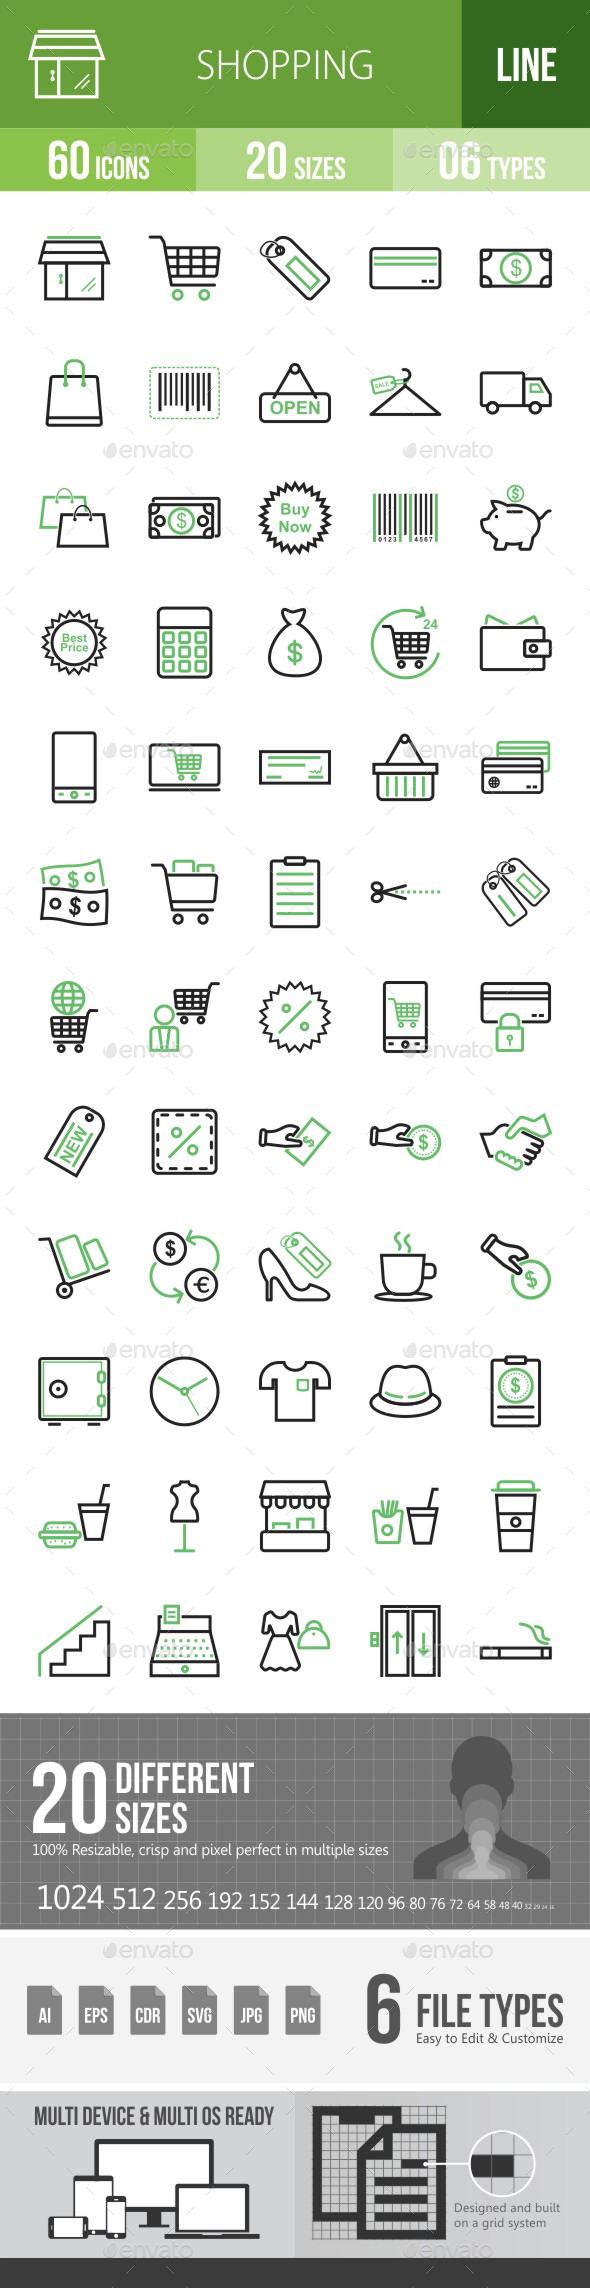 Shopping Line Green & Black Icons - Icons